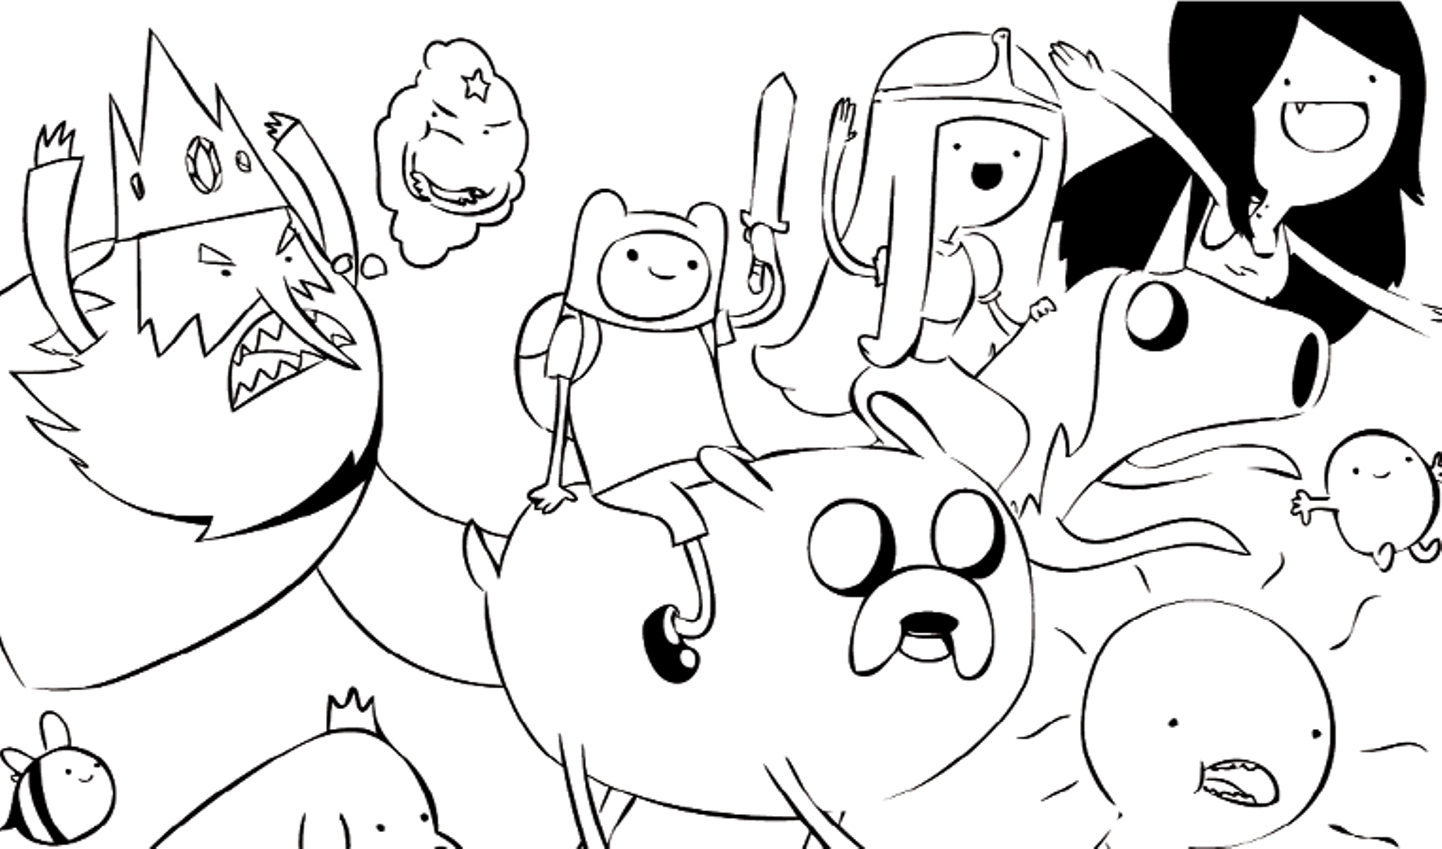 adventure time coloring pages printable - Cartoon Coloring Pages Printables